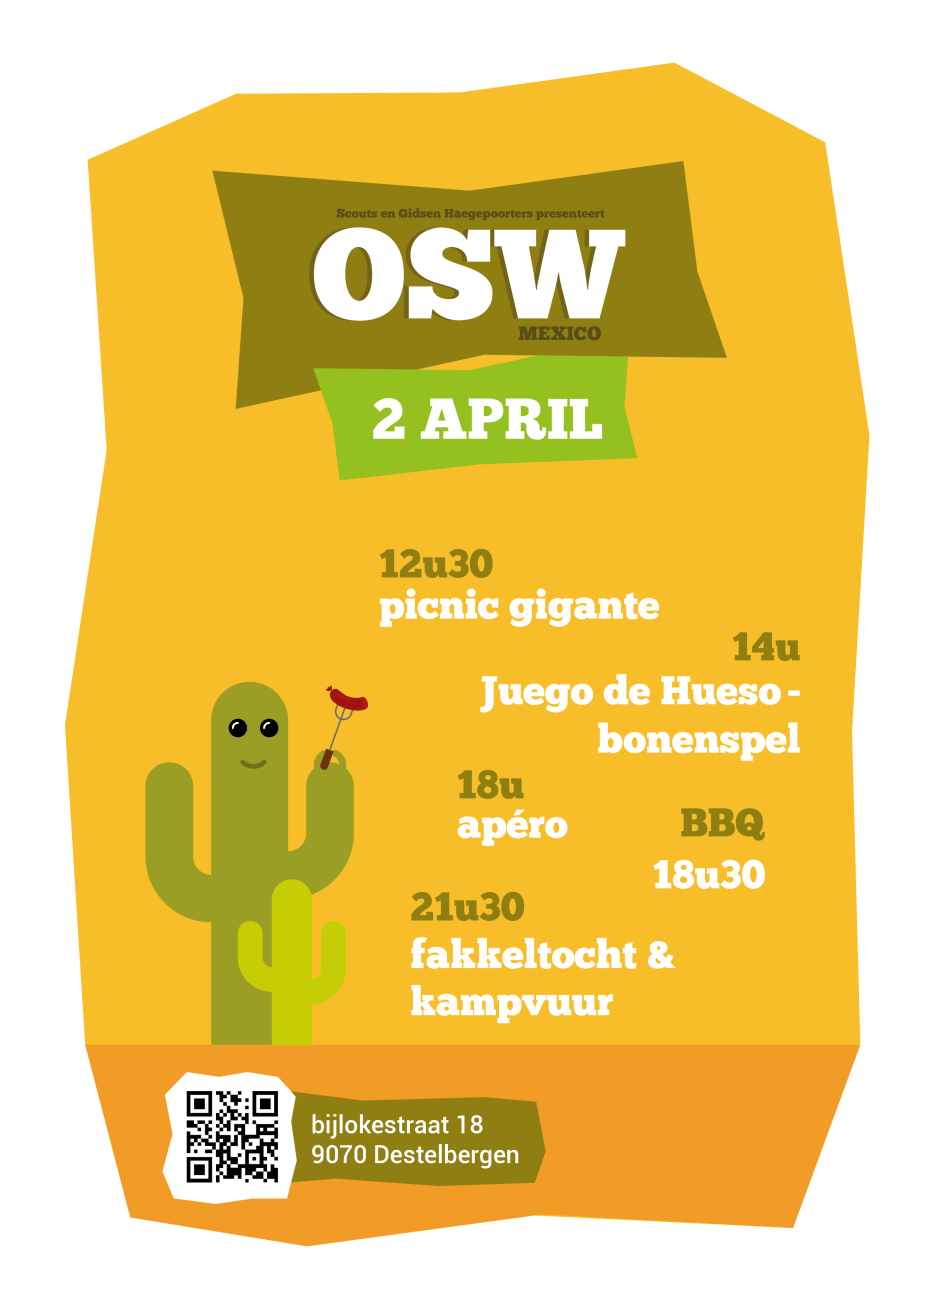 WVD | Affiche Open Scouts Weekend '16 - Scouts & Gidsen Haegepoorters